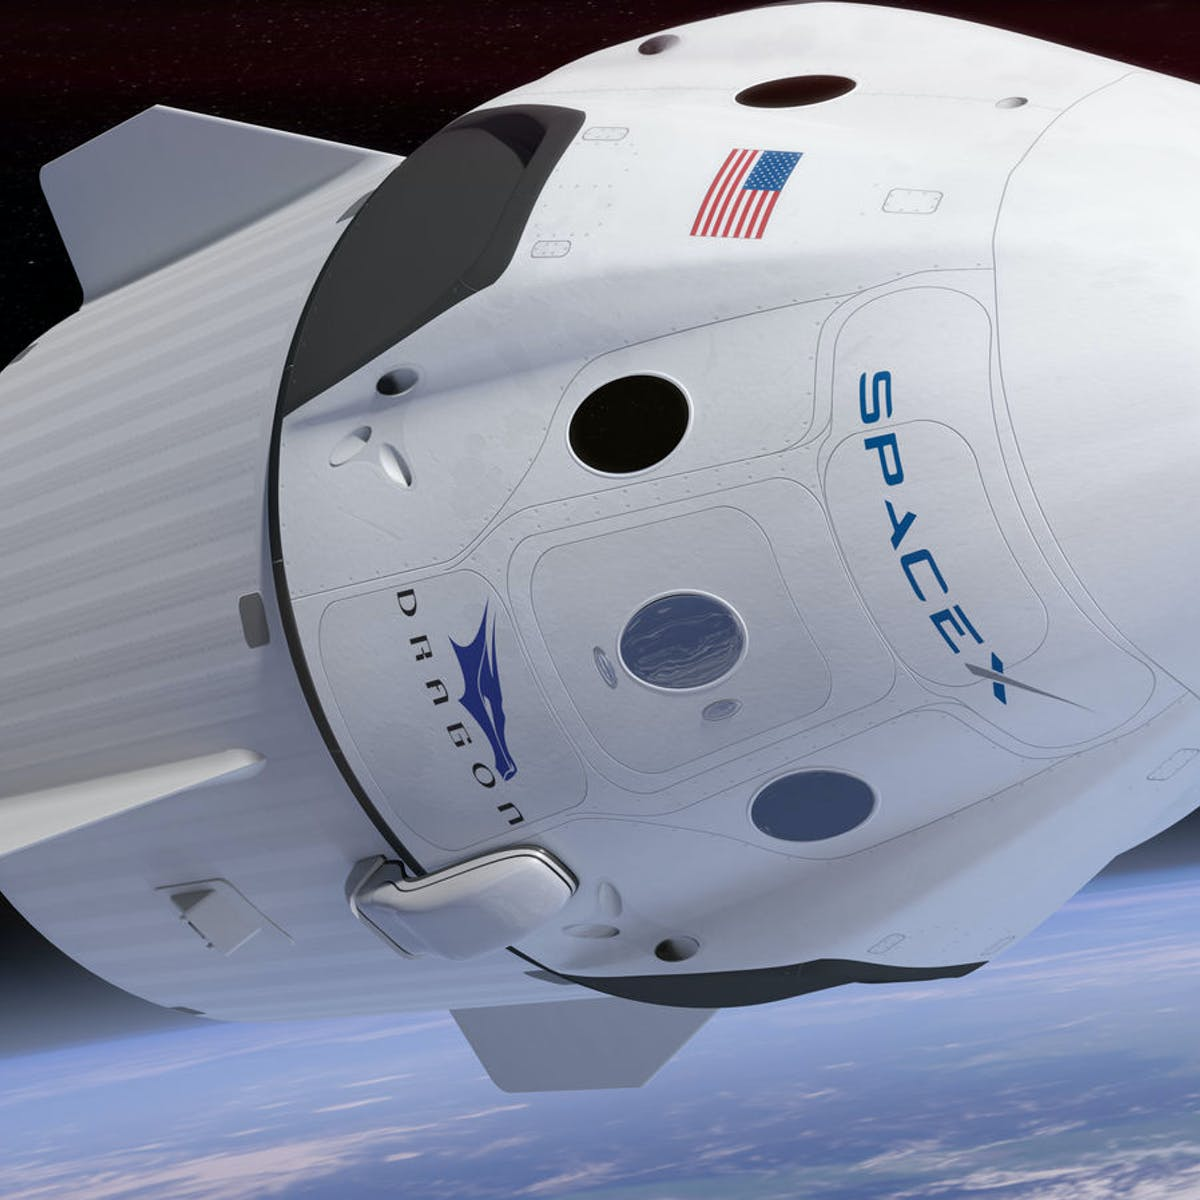 SpaceX Crew Dragon: Elon Musk responds as NASA hits 'full panic' mode